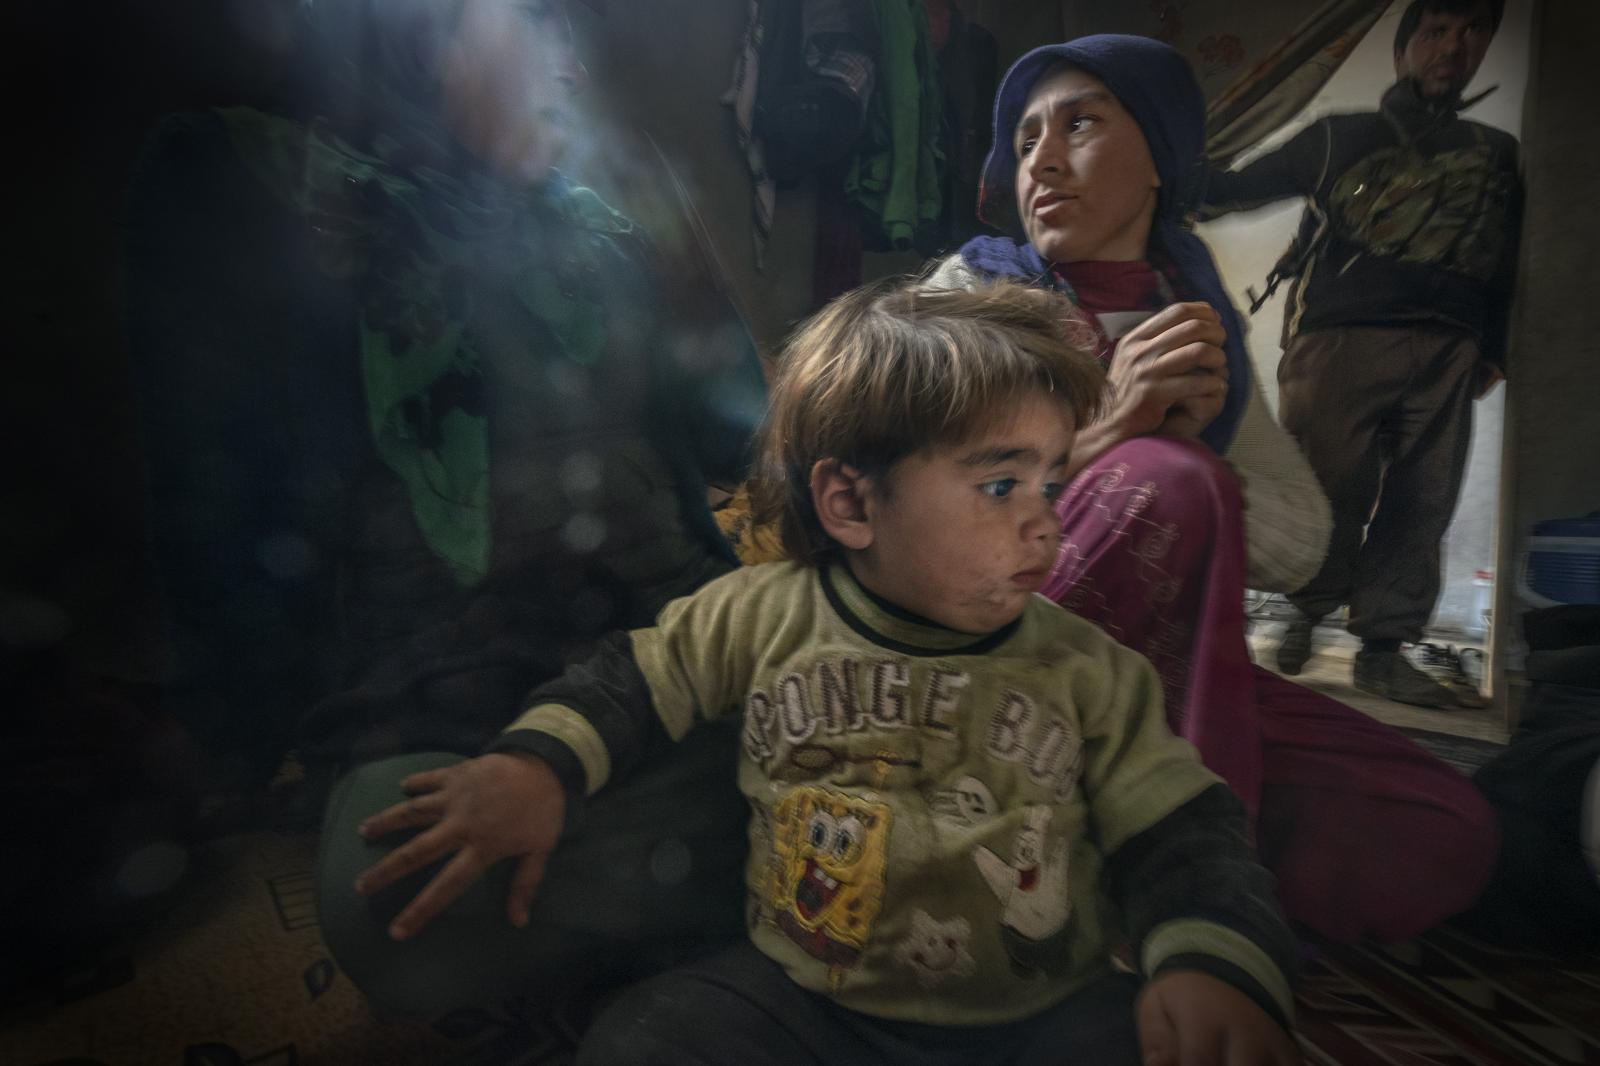 Zehra, a 25-year-old Kurdish woman who lost her 8-year-old daughter to a pulmonary infection in a refugee camp, sits with her other daughter in their home in the city of Kobane. Her husband, a People's Protection Units (YPG) fighter, is in the background. After four months of intense fighting, YPG, Women's Protection Units (YPJ), Peshmerga (those who face death) and Free Syrian Army (FSA) forces freed Kobane from the clutches of the ISIS caliphate (Syria, 2015)